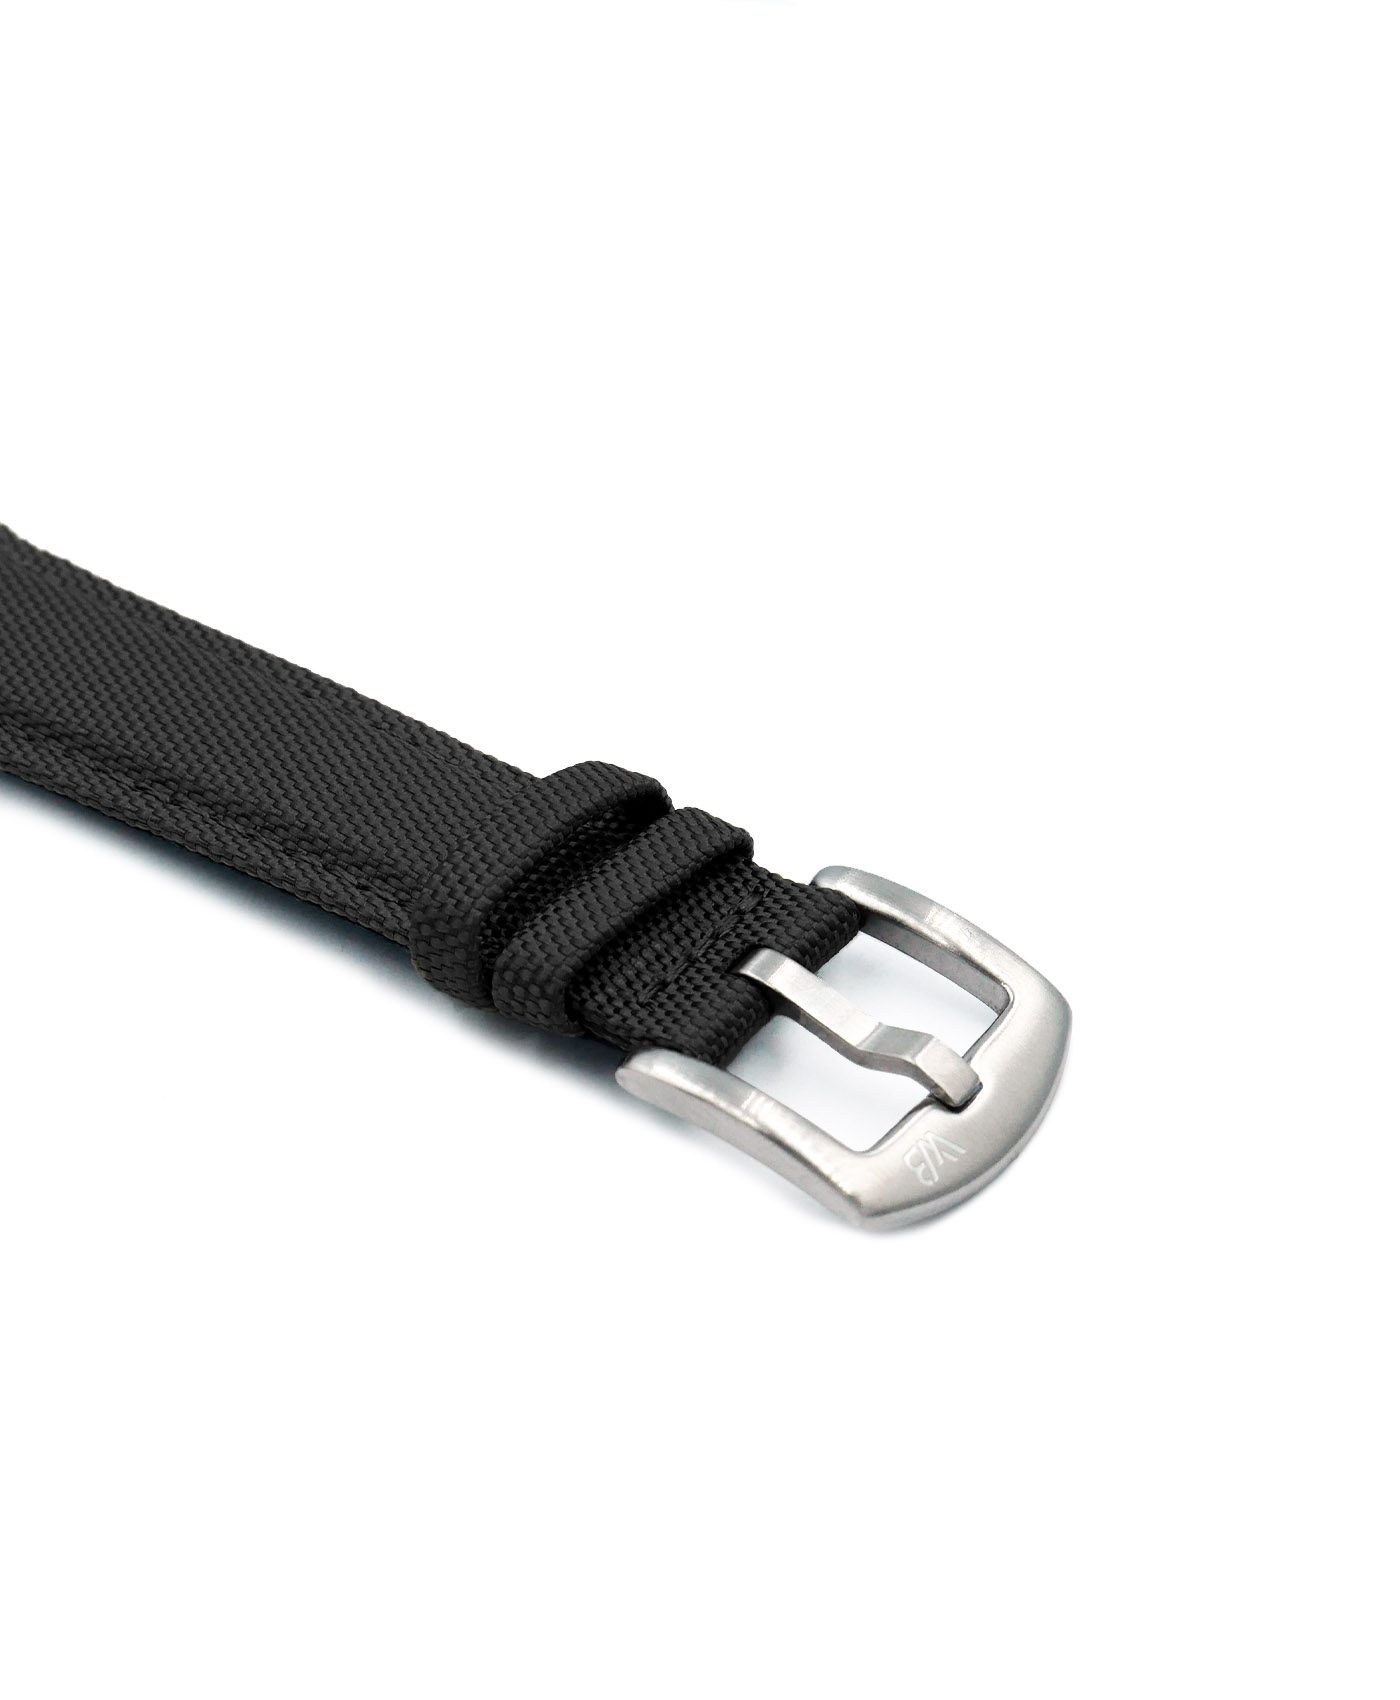 Cordura Watch Strap Black stainless steel buckle by Watchbandit